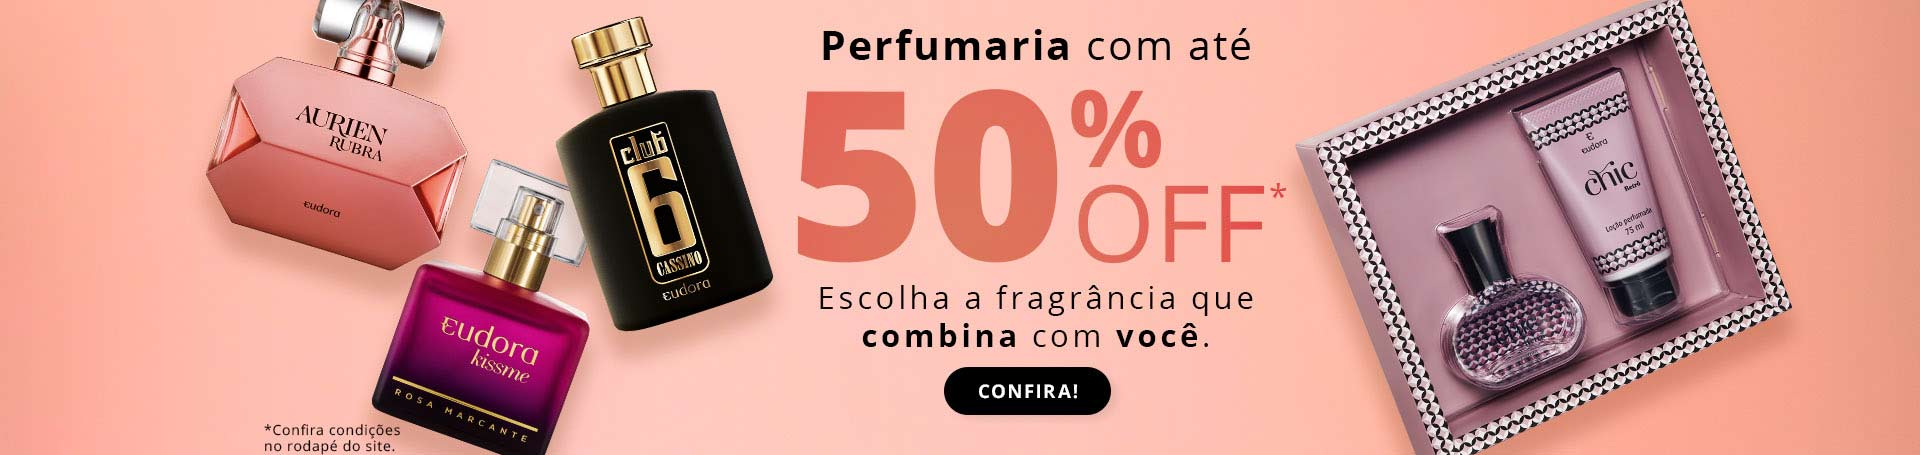 perfumaria-50-off-desktop